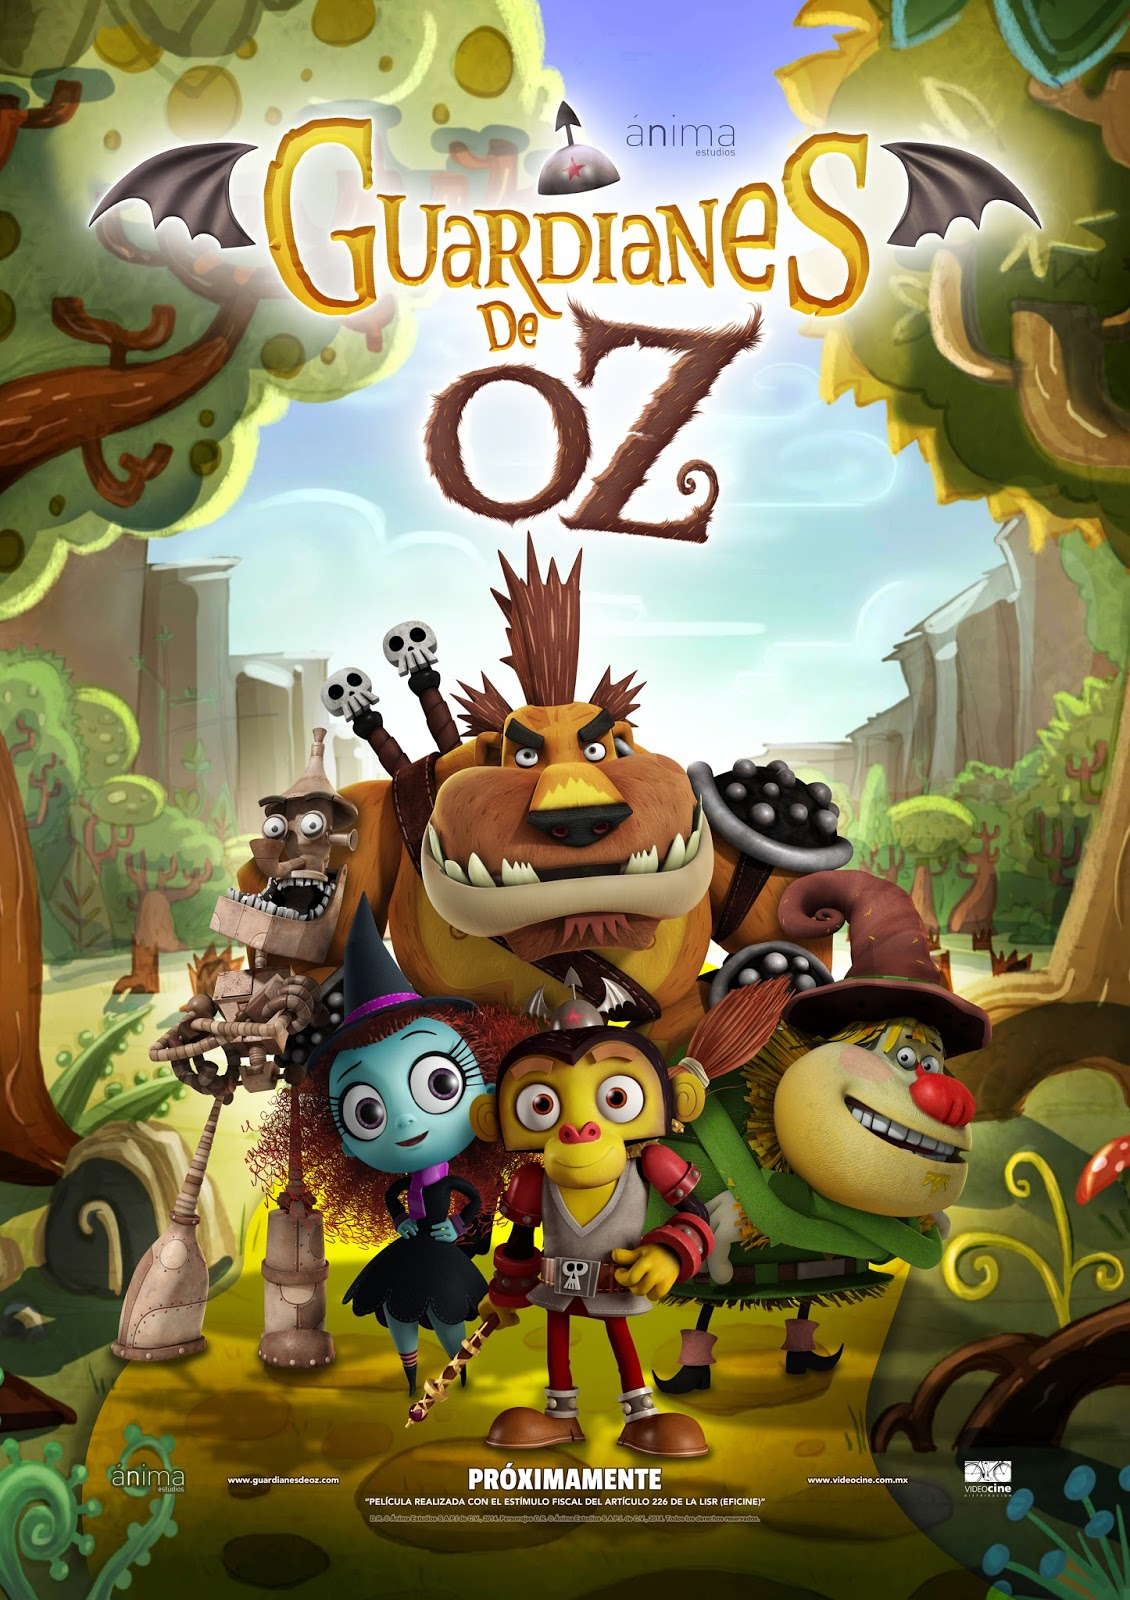 Guardiães de Oz